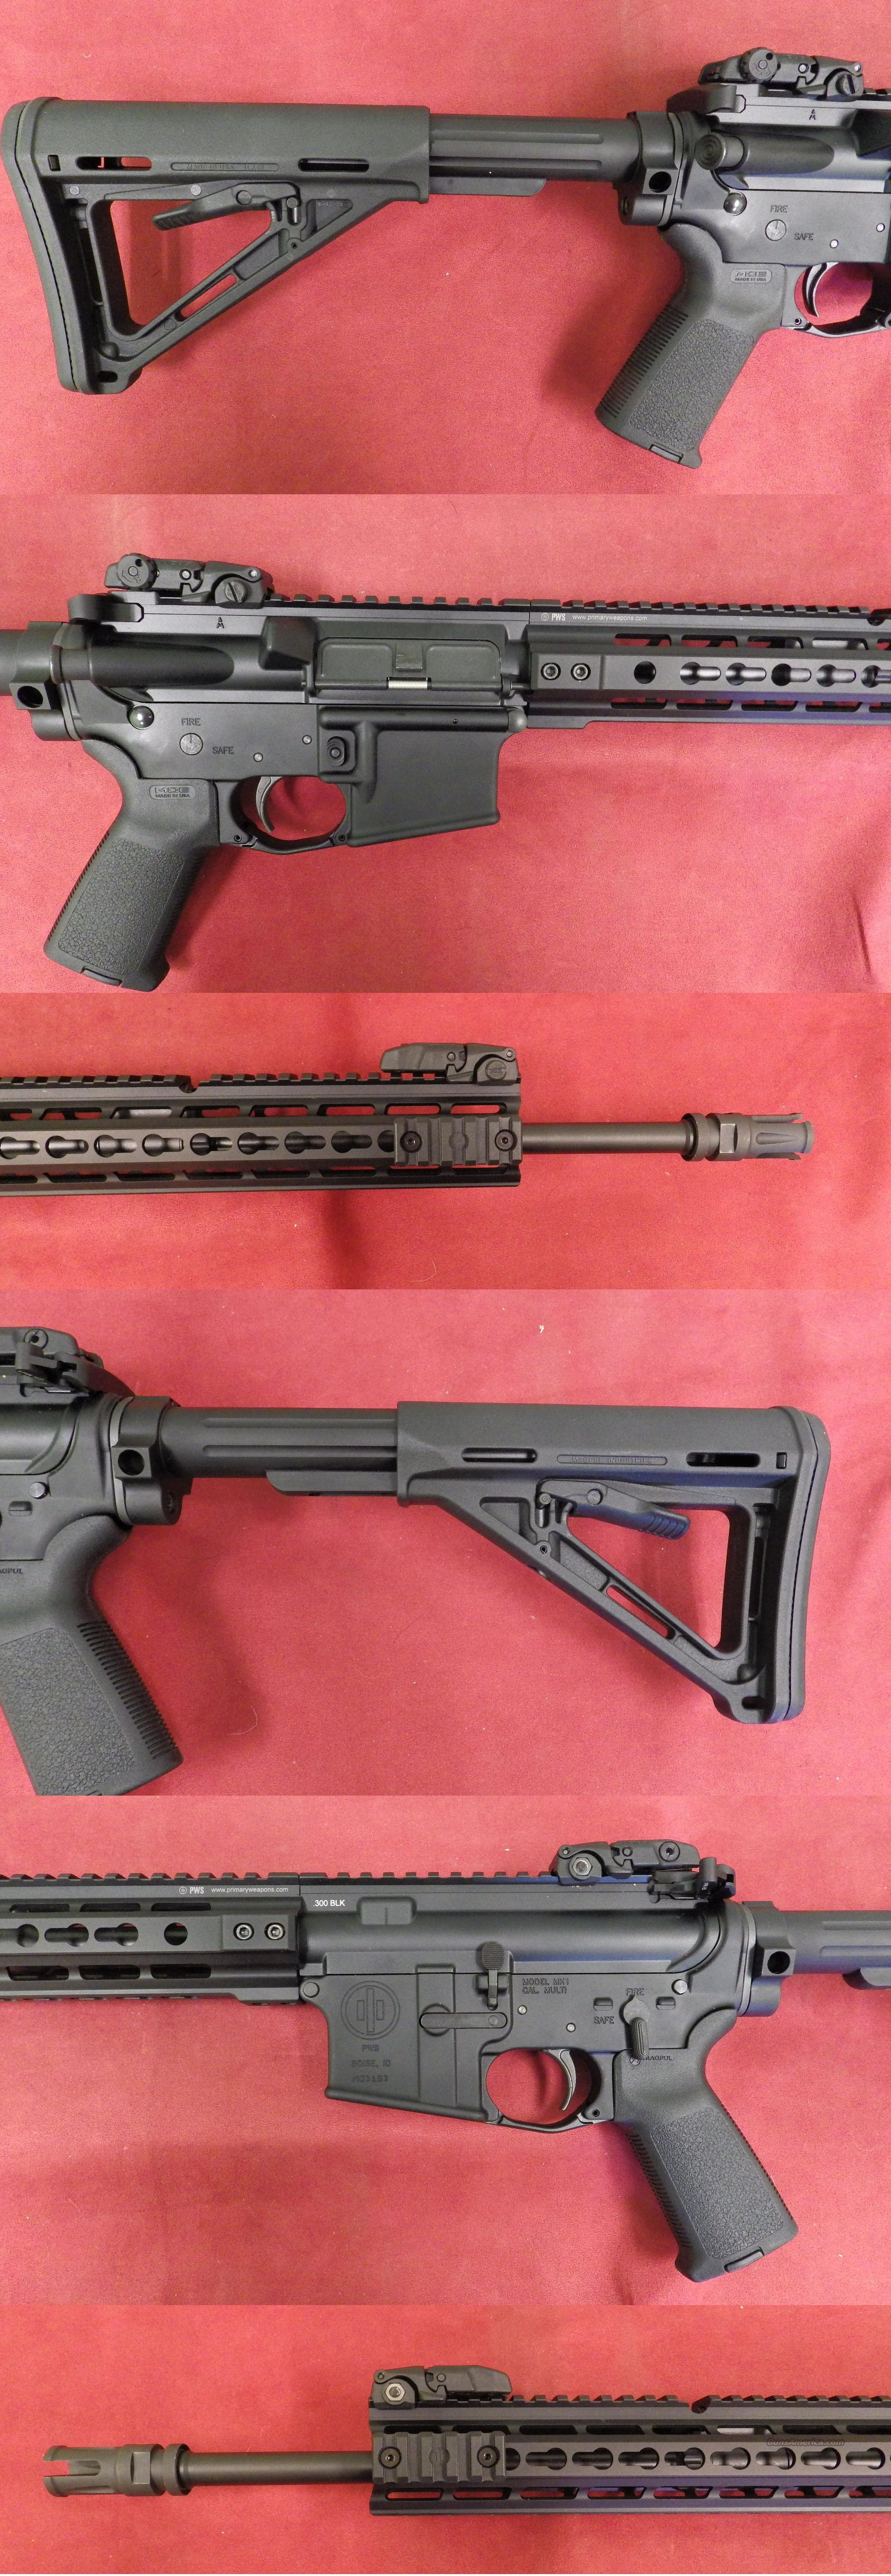 Primary Weapons Systems MK-I .300 Blackout *MUST CALL*  Guns > Rifles > PQ Misc Rifles